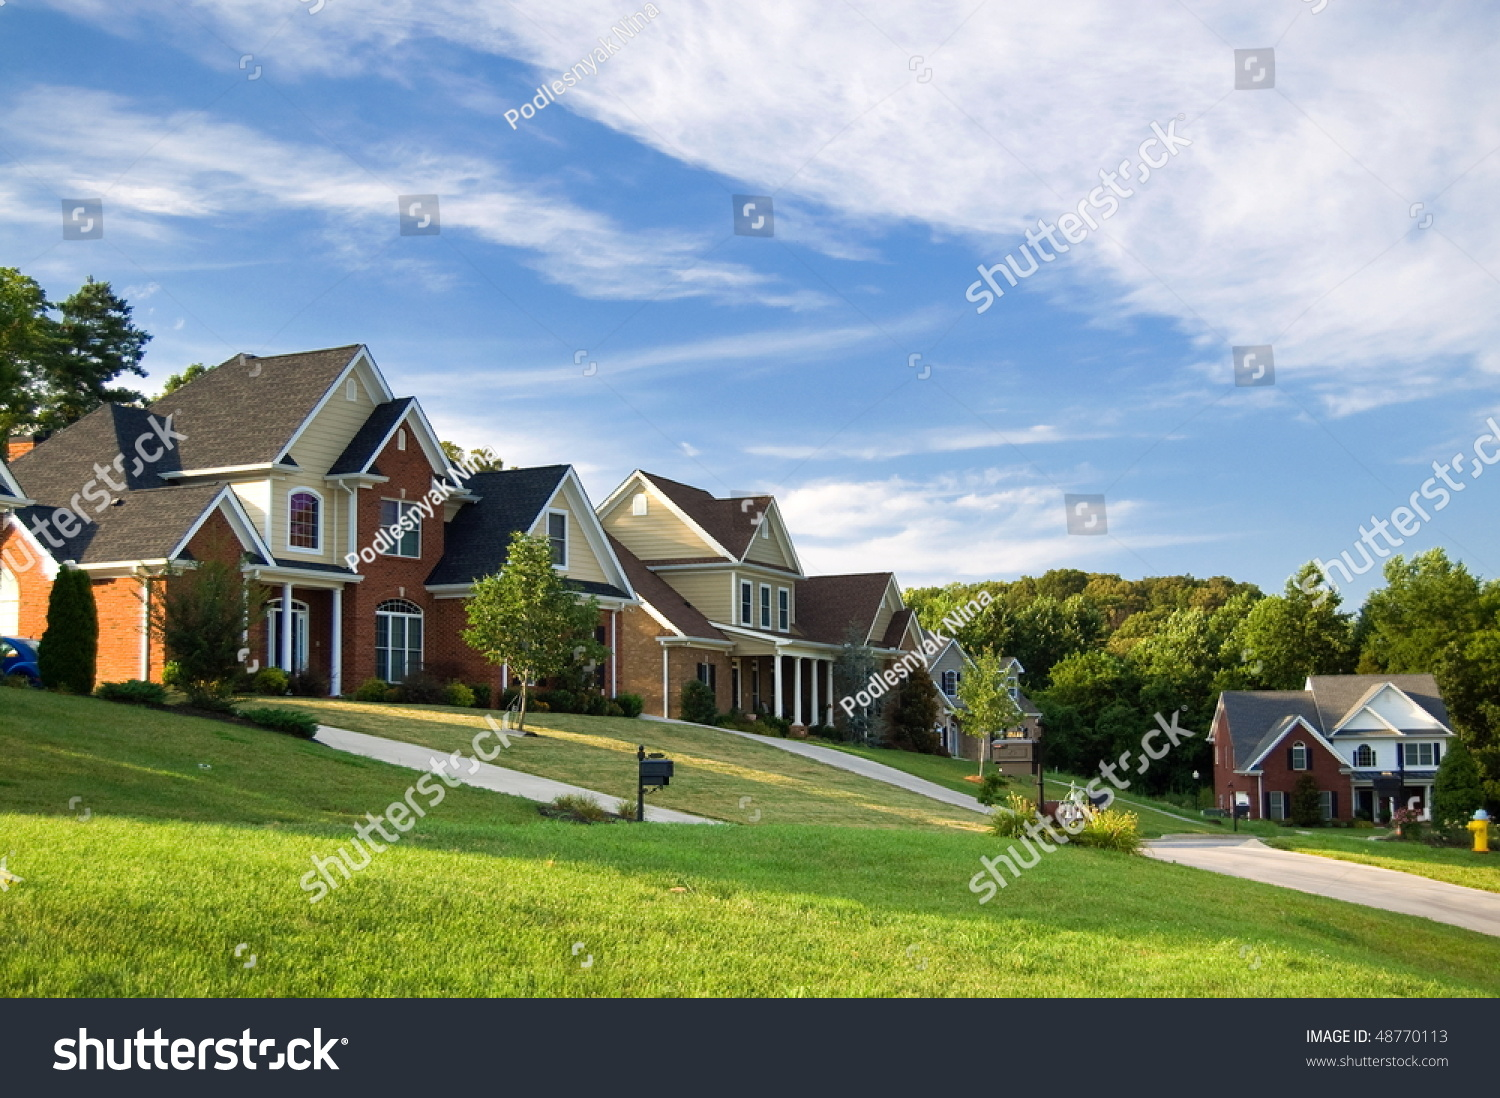 American street beautiful houses stock photo 48770113 for Beautiful house music